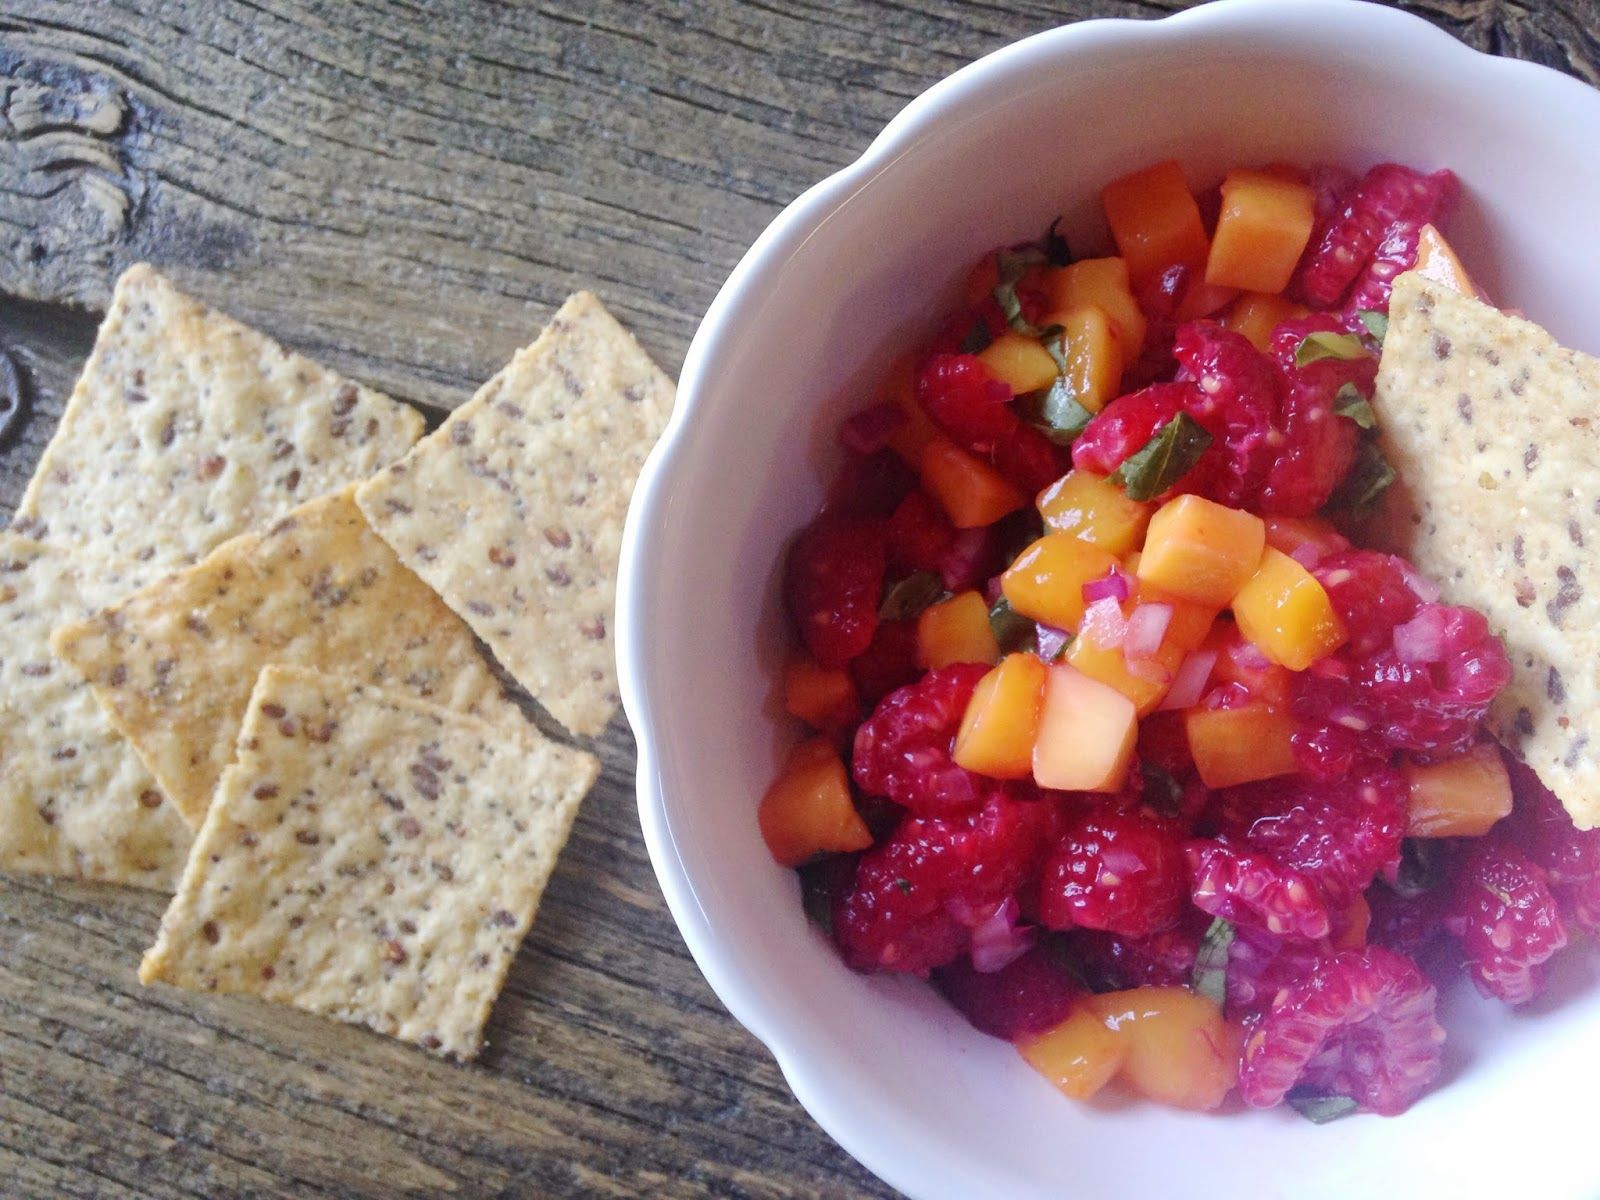 Raspberry Mango Salsa (in the depths of winter, you can make this recipe for a taste of sweet summertime!)